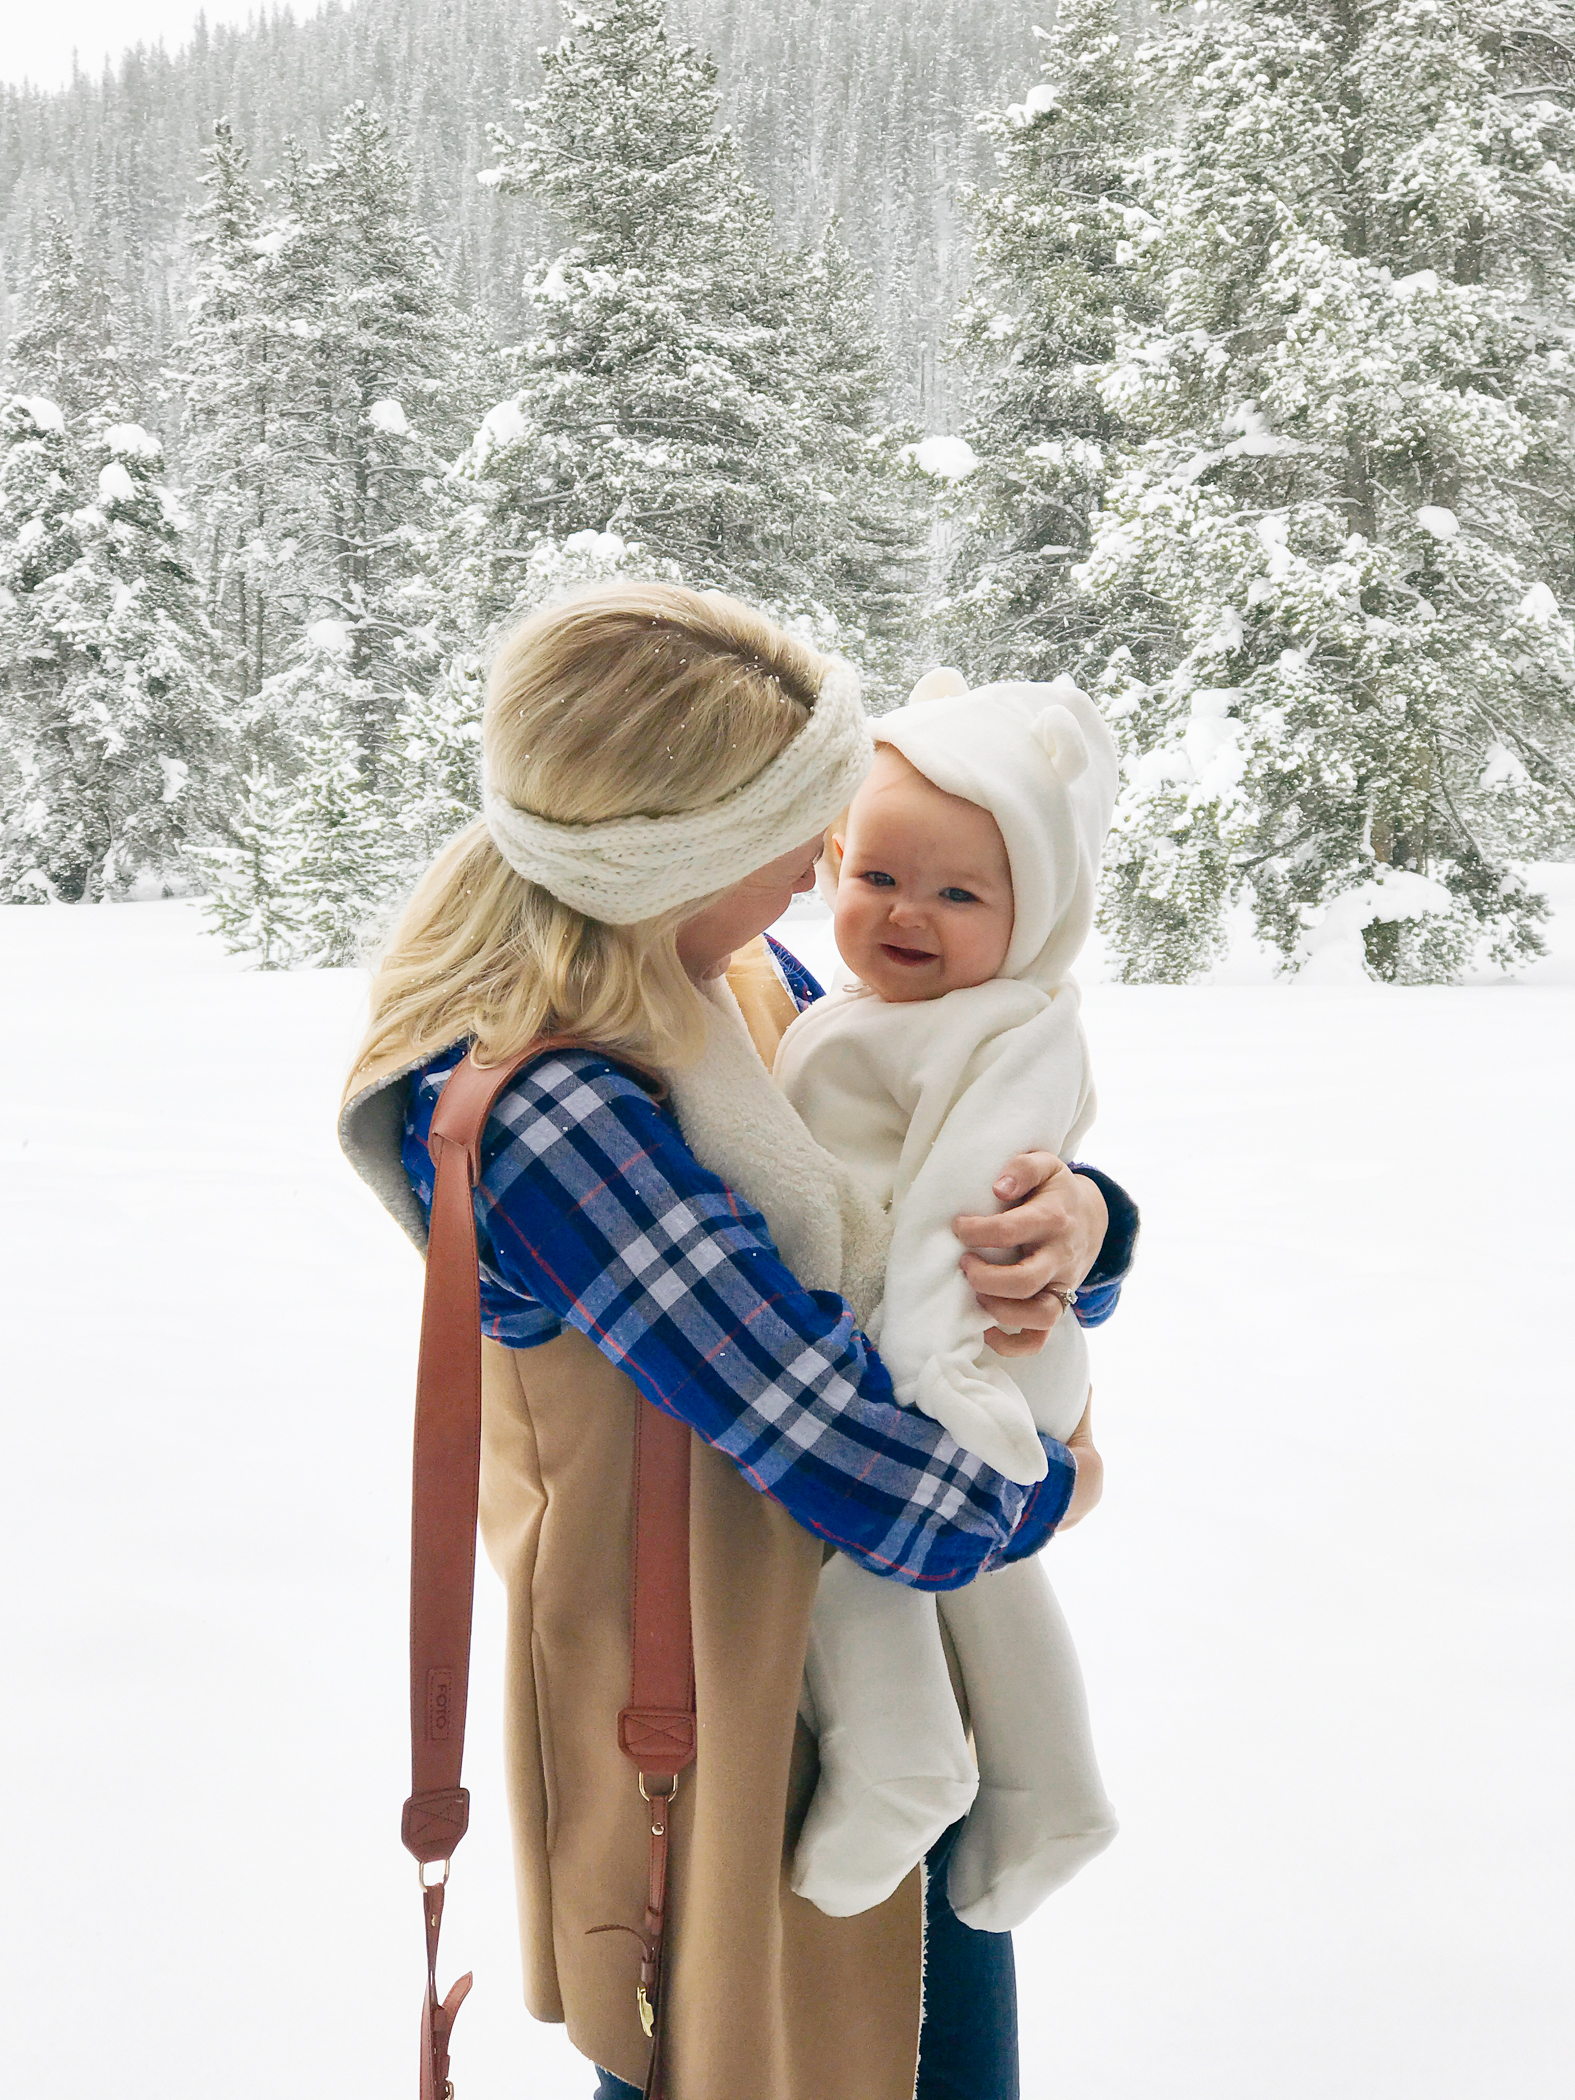 The James Fotostrap, Winter family photos with baby in Colorado.